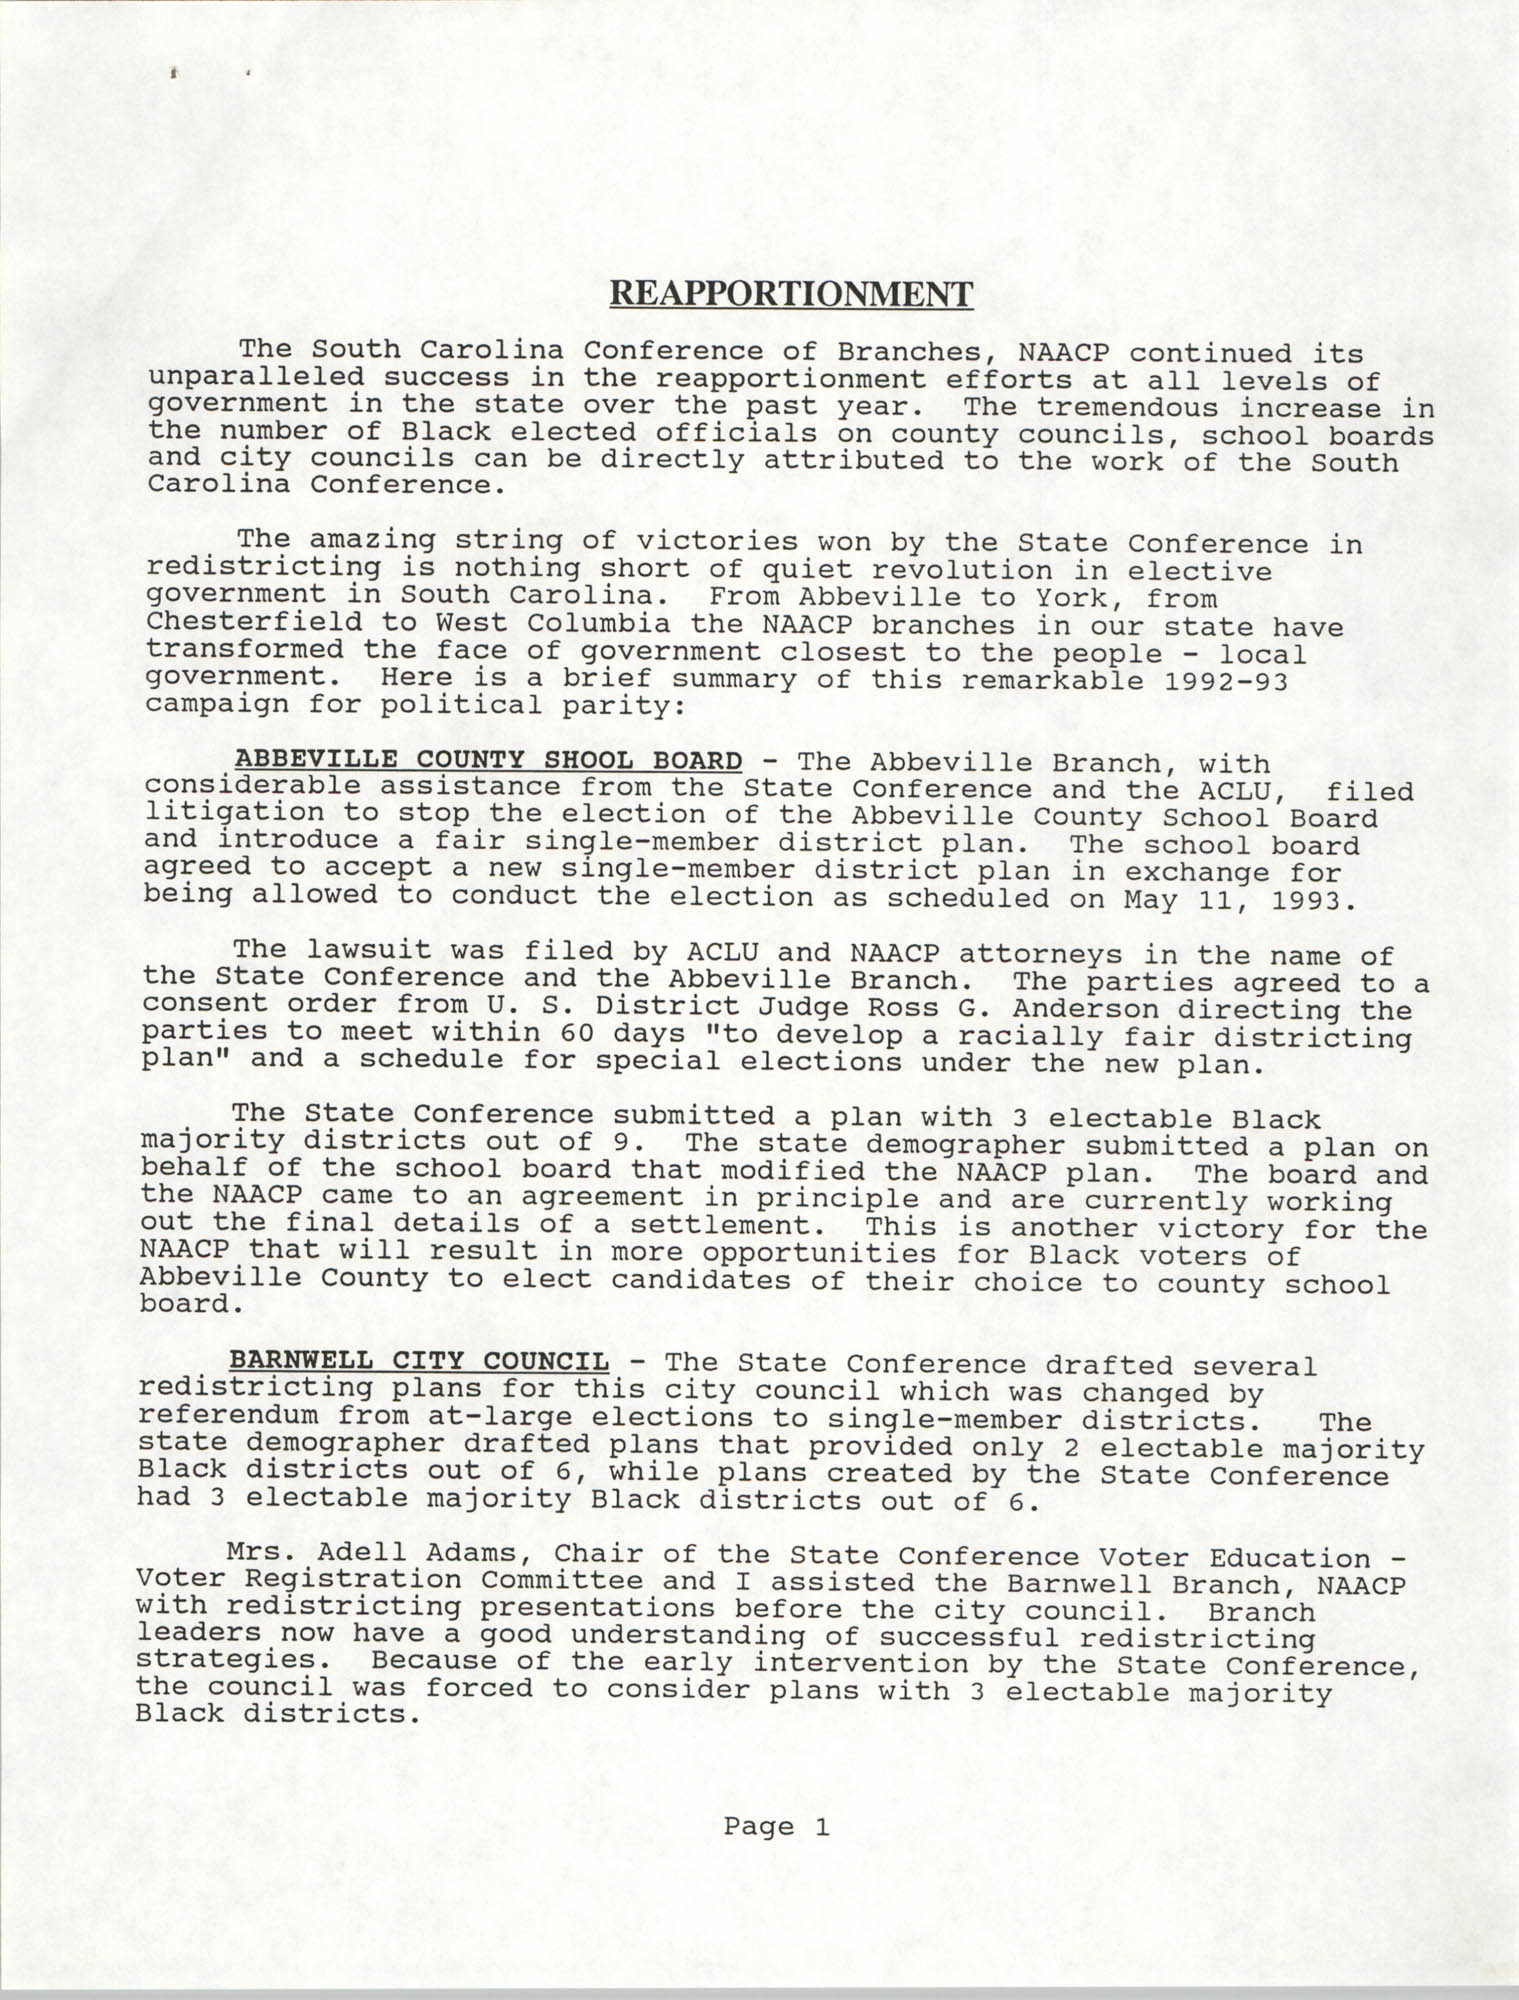 South Carolina Conference of Branches of the NAACP, Annual Report, October 9, 1993, Page 1